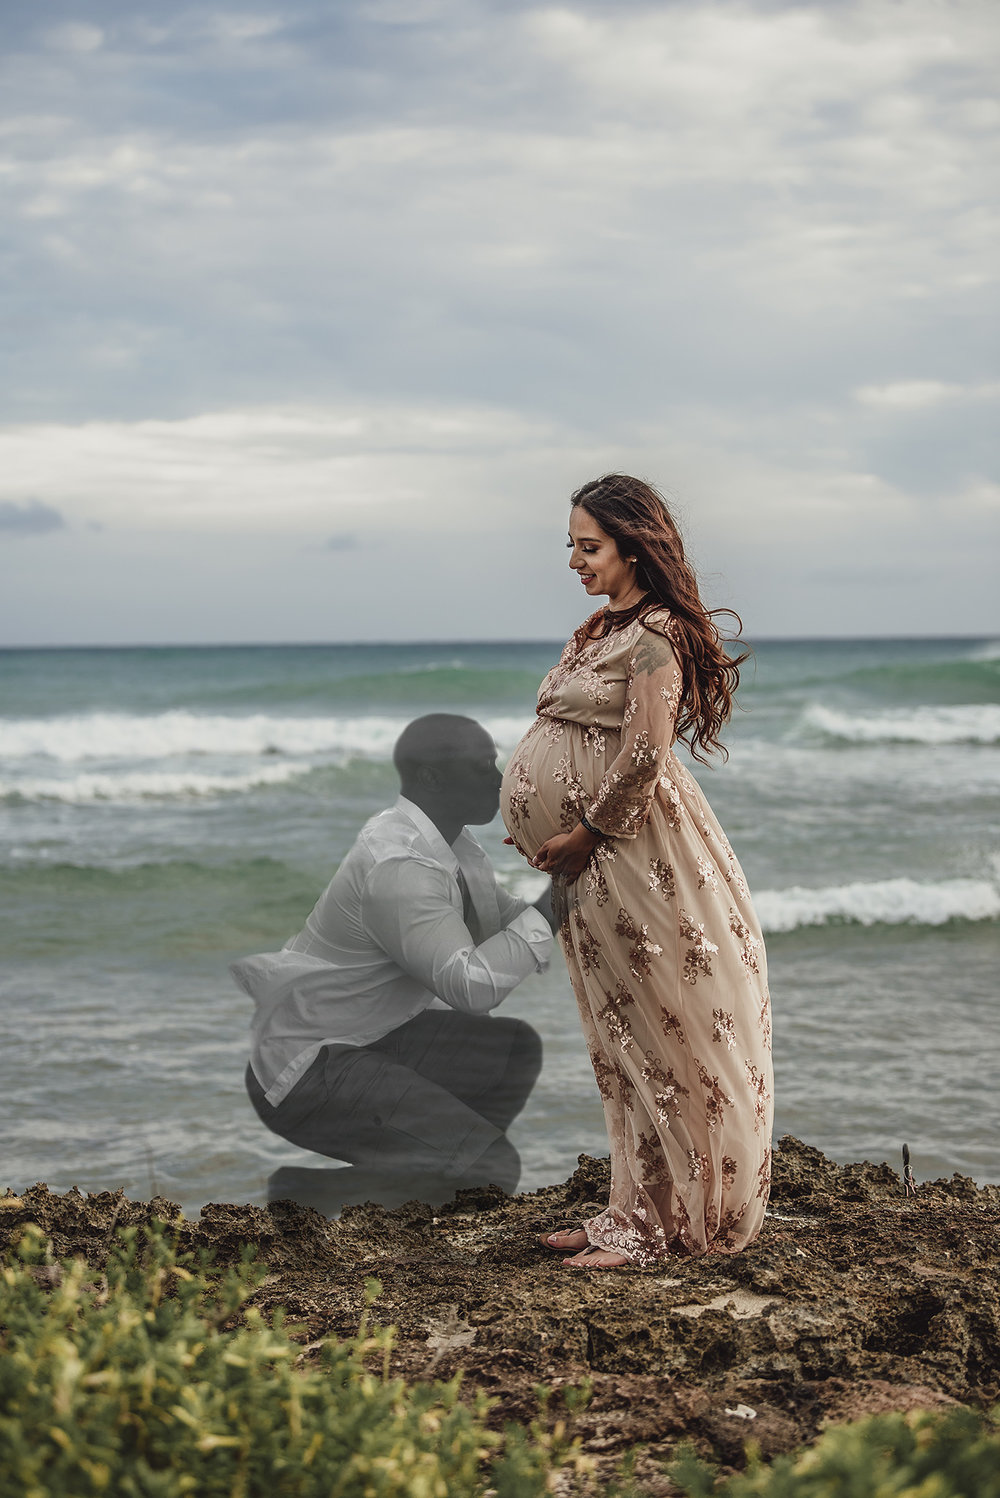 Barbers point oahu hawaii maternity memorial photoshoot tragic life lost while wife carries his last legacy